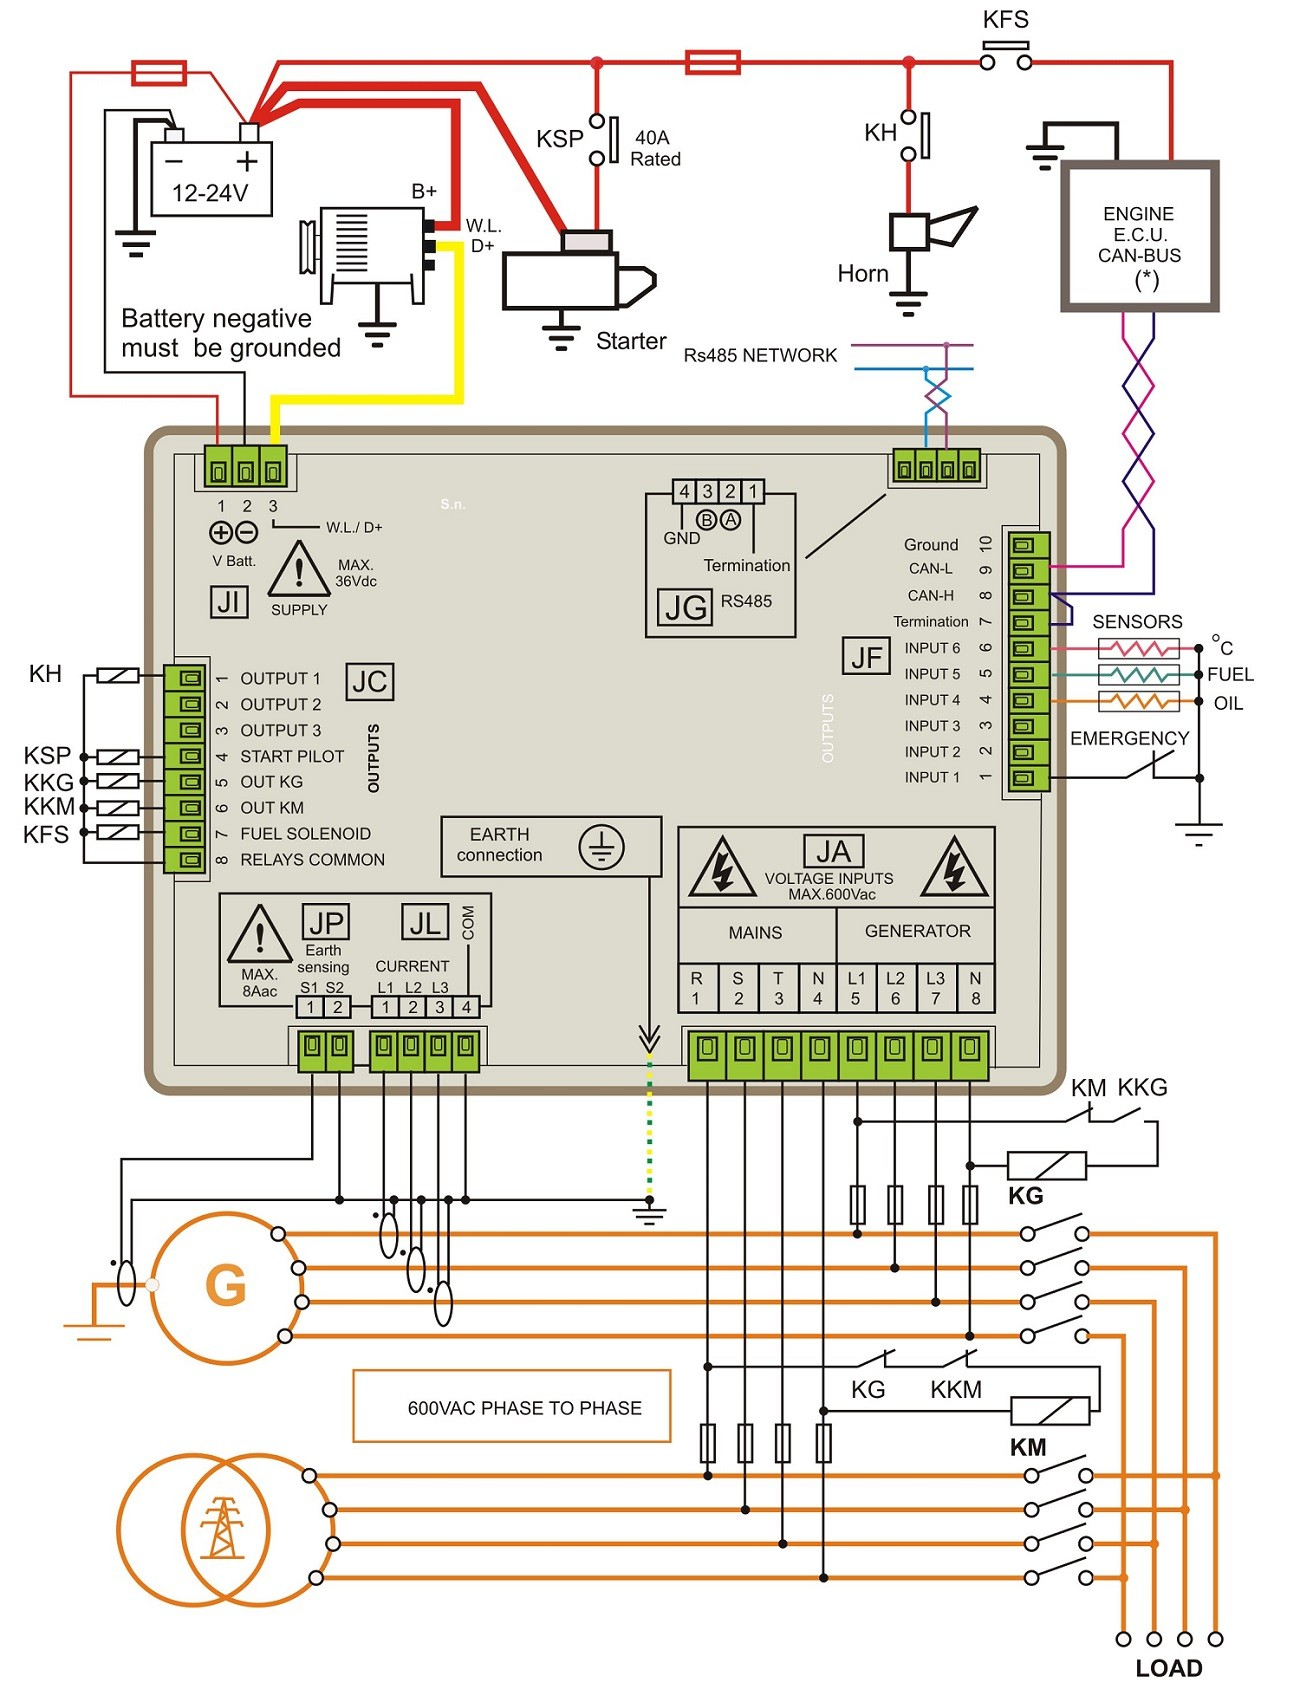 generator control panel wiring diagram pdf Collection-Generator Amf Wiring Diagram Save Generator Control Panel Manufacturers – Genset Controller 11-h